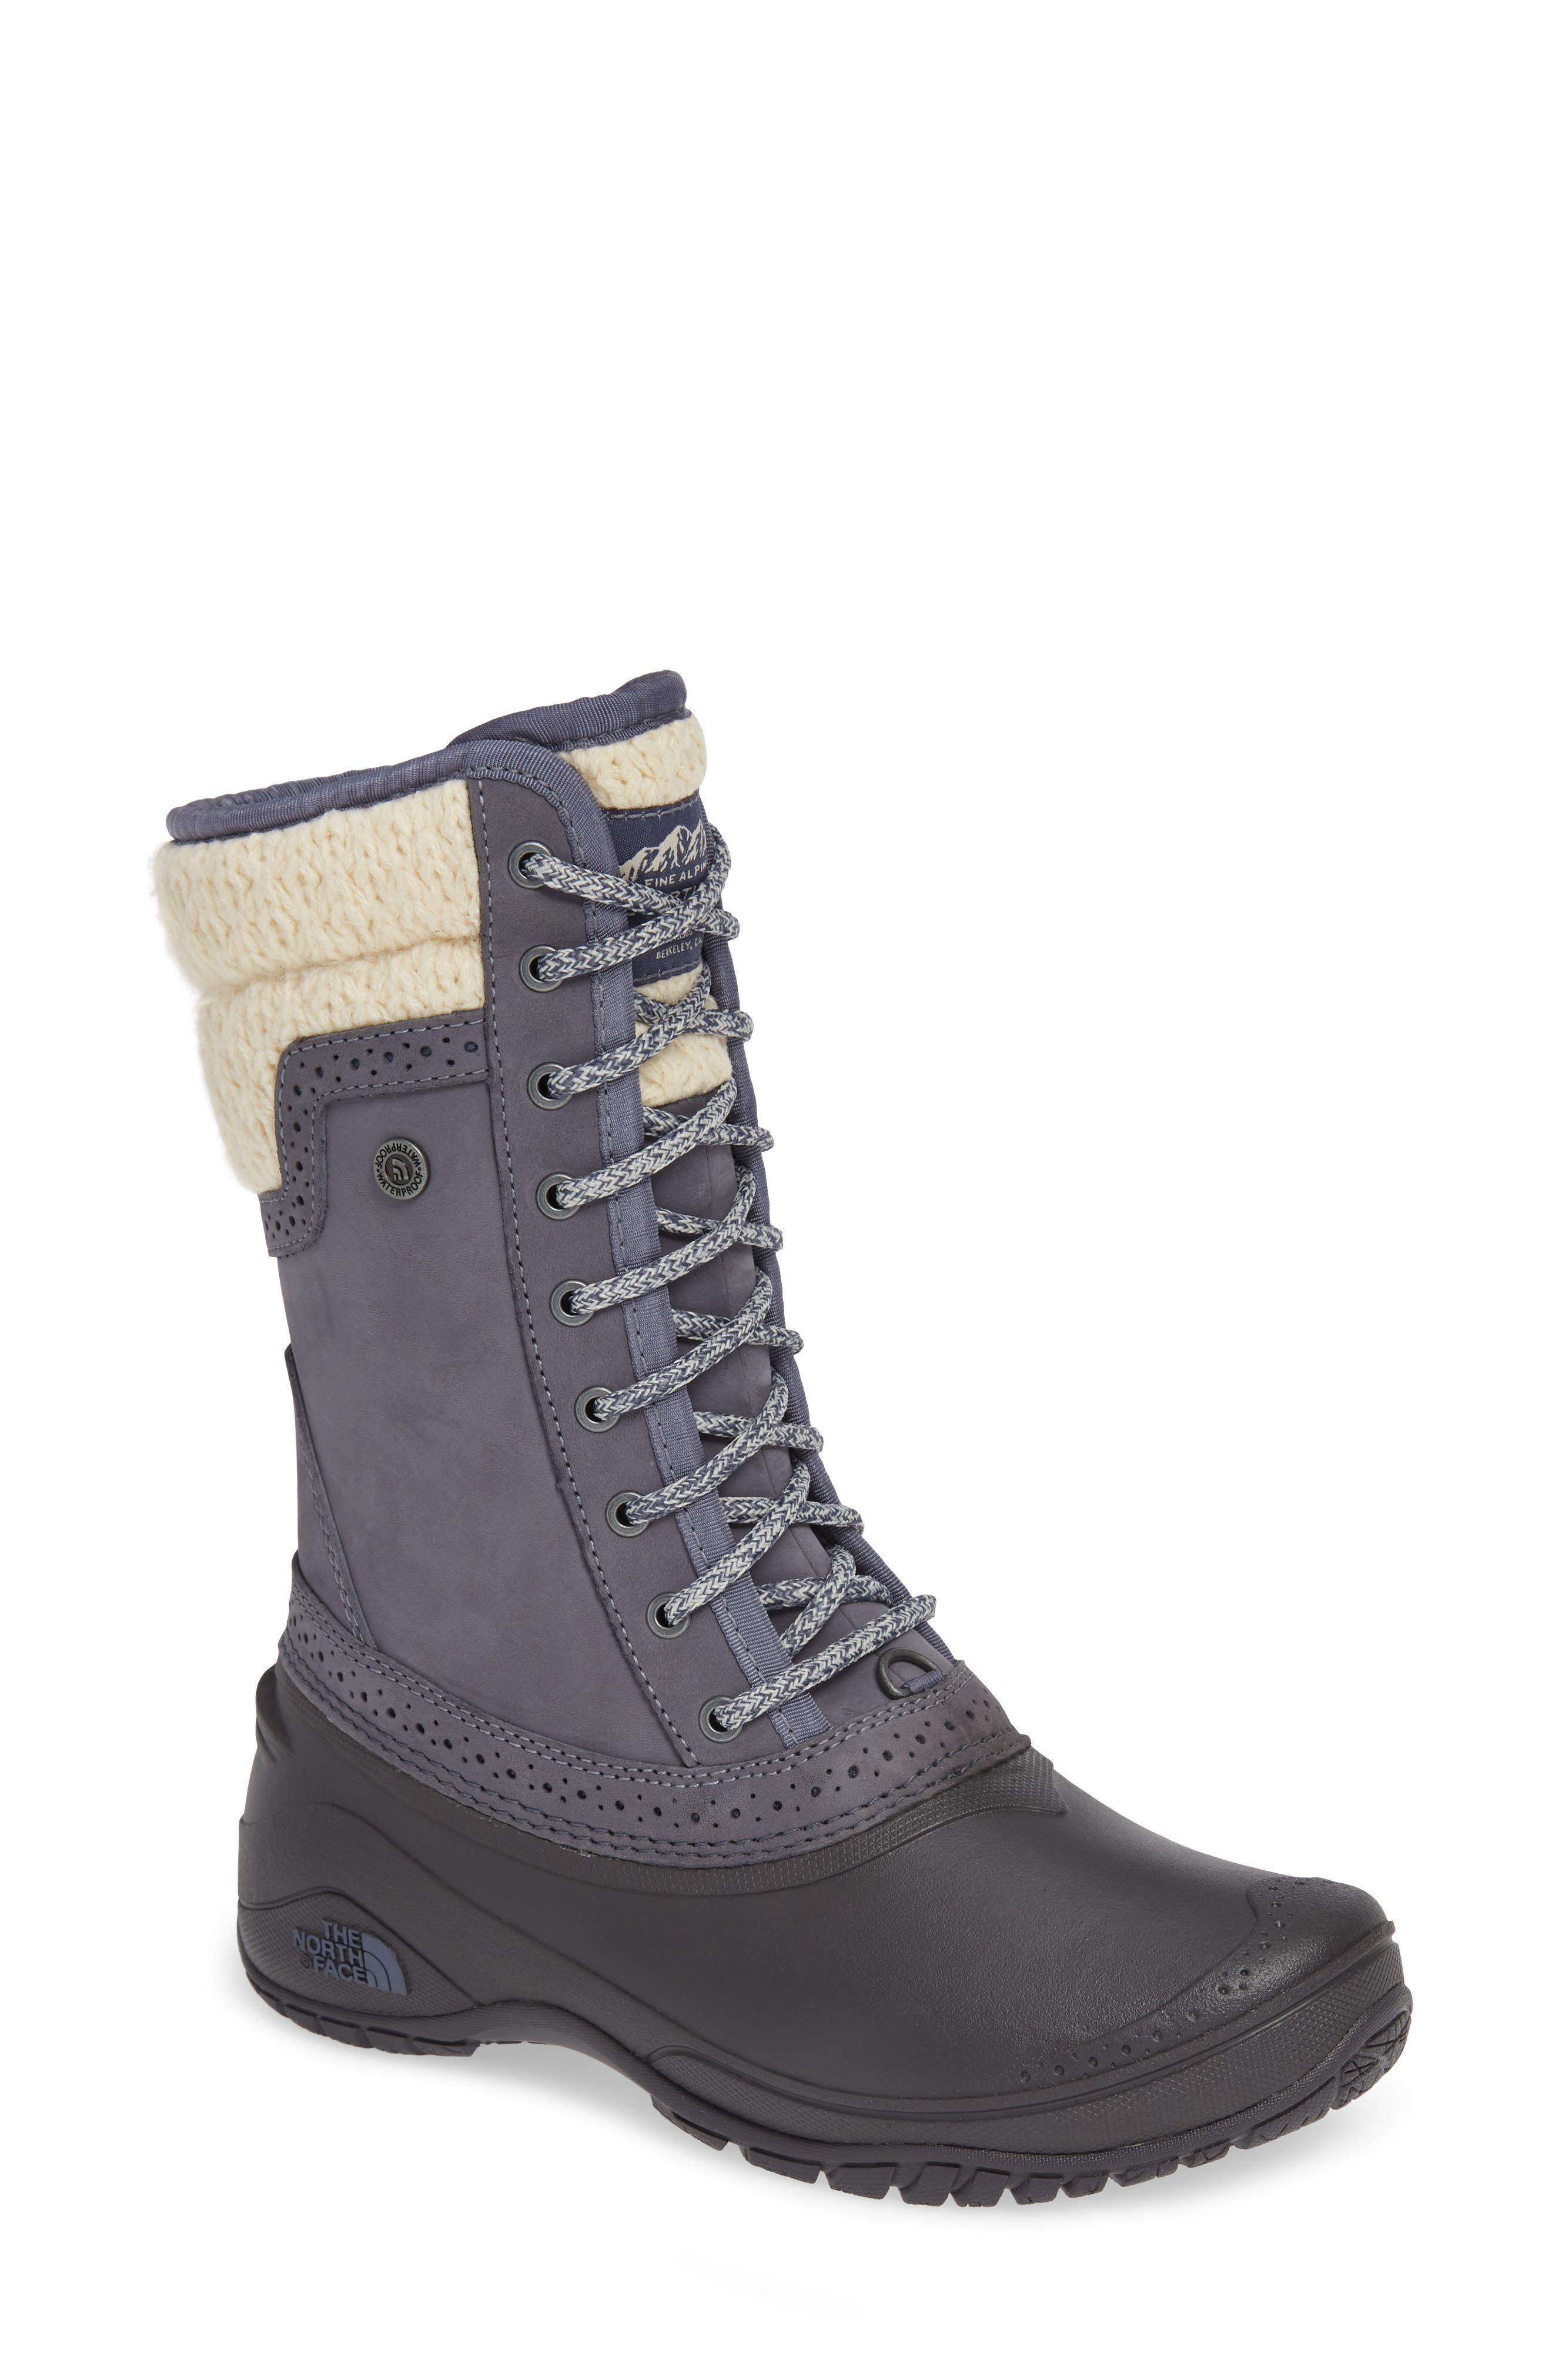 Shellista Waterproof Insulated Snow Boot,                             Main thumbnail 1, color,                             Grisaille Grey/ Vintage White